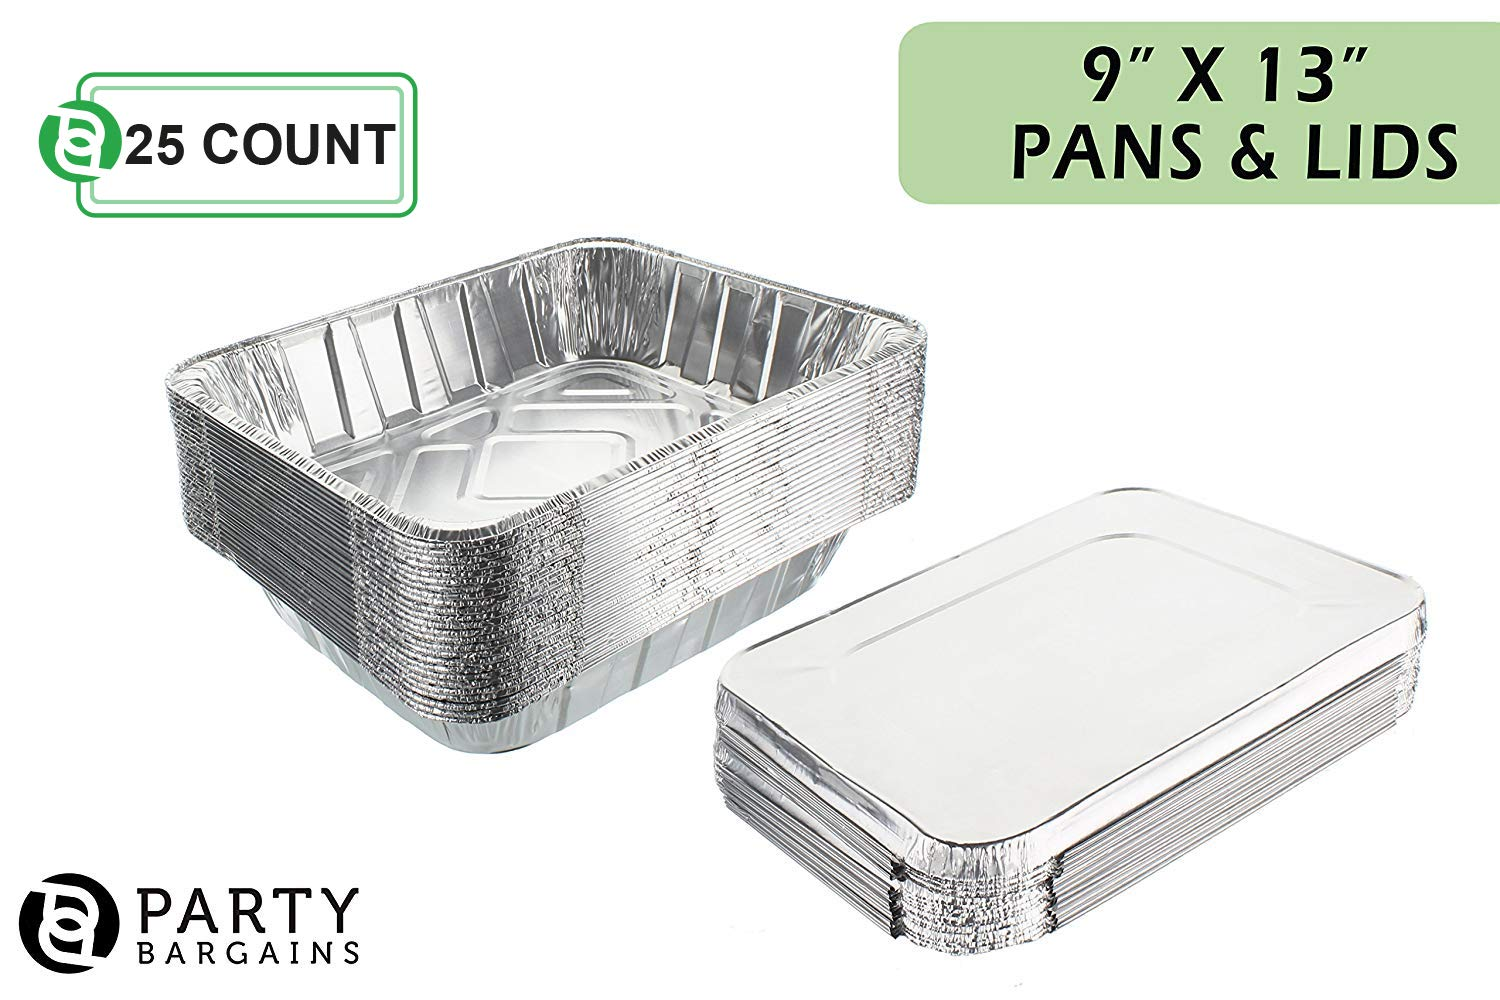 Aluminum Foil Pans   Disposable Pan Containers with Lids Set   Excellent for Broiling, Roasting, Grilling, Baking Cakes, Pies, Lasagna, More   9 x 13 Half Size Deep Steam Table Pans   25 Count by Party Bargains (Image #2)